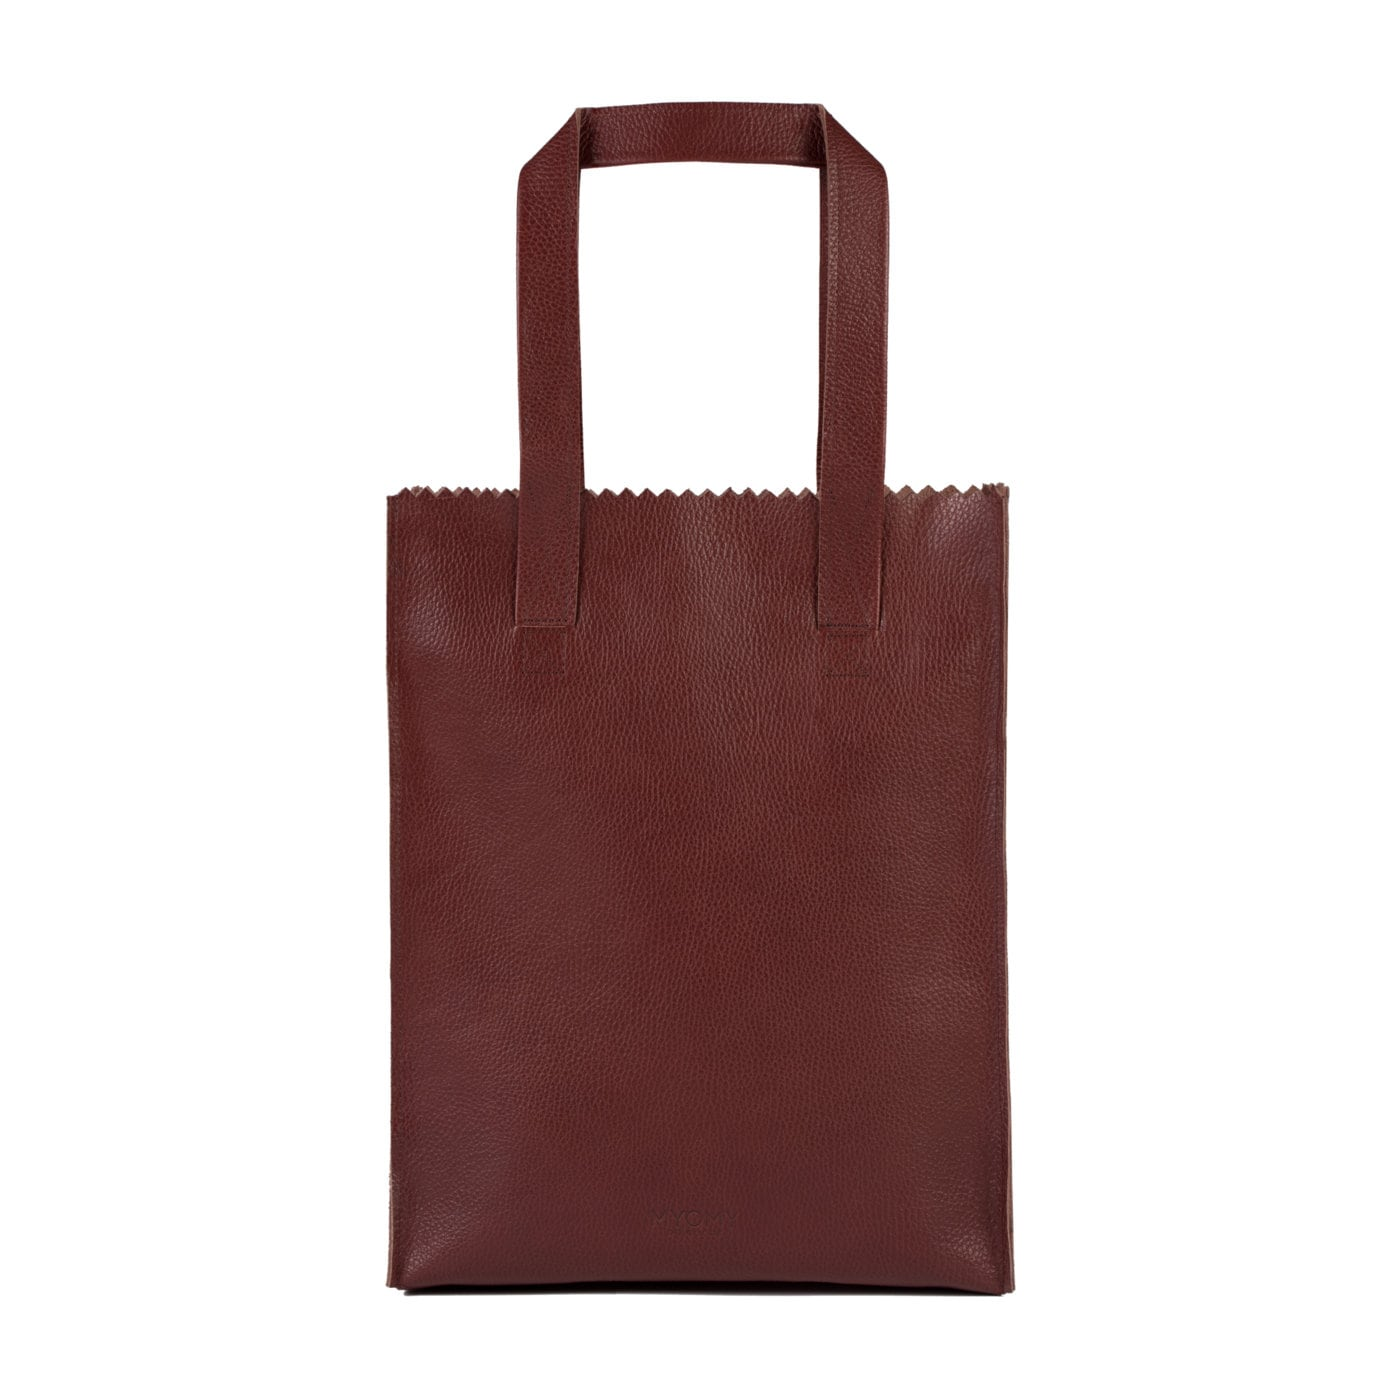 MY PAPER BAG Long handle zip – rambler bordeaux